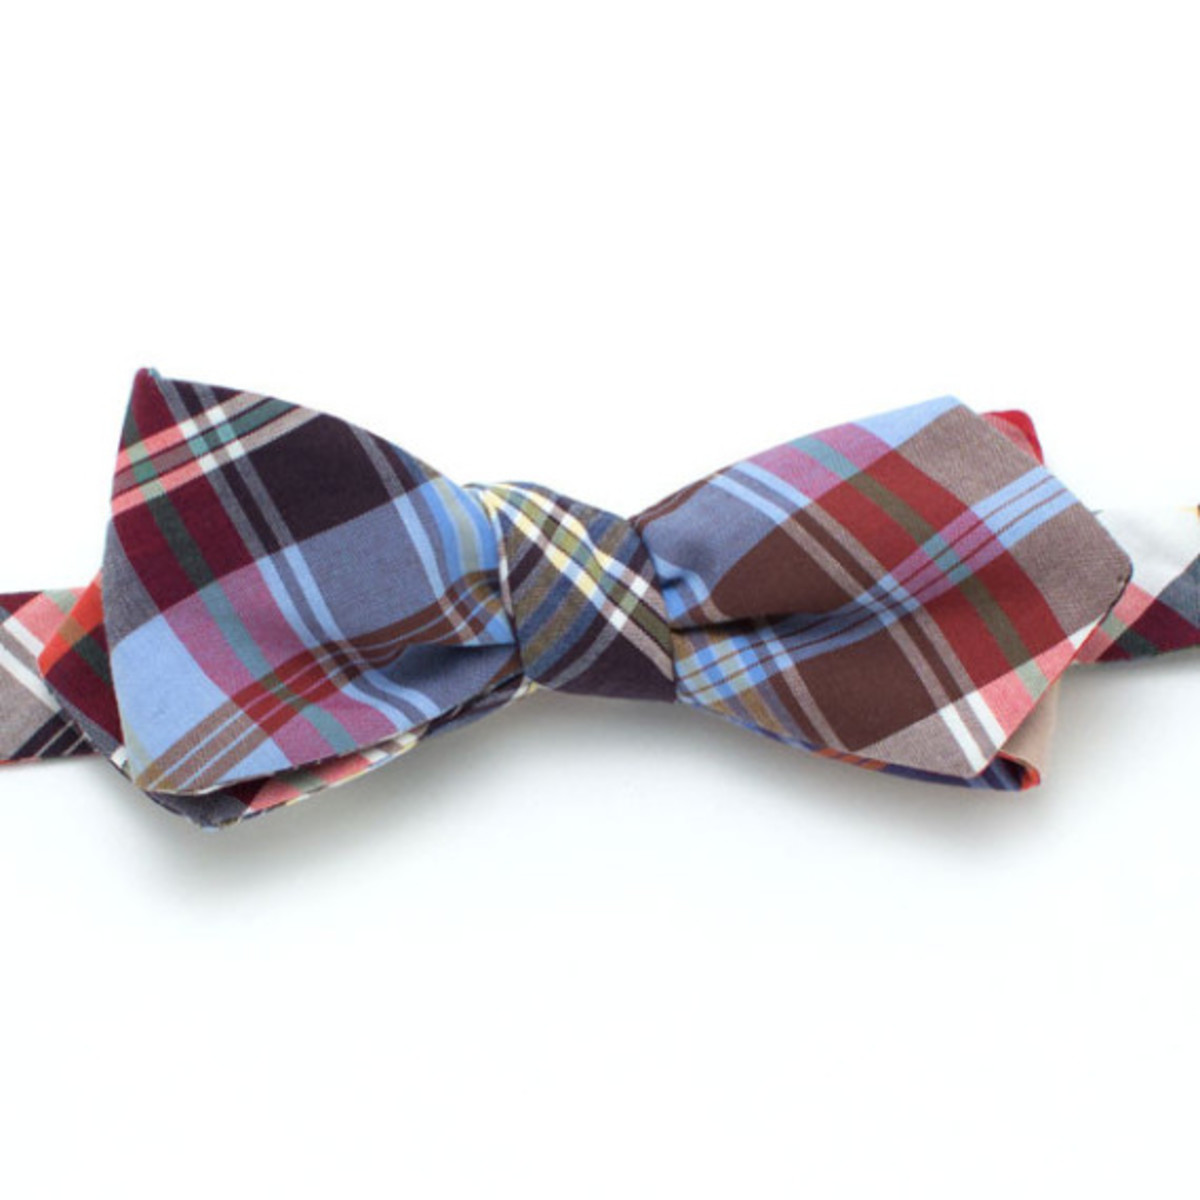 general-knot-and-co-portland-family-neckwear-collection-11